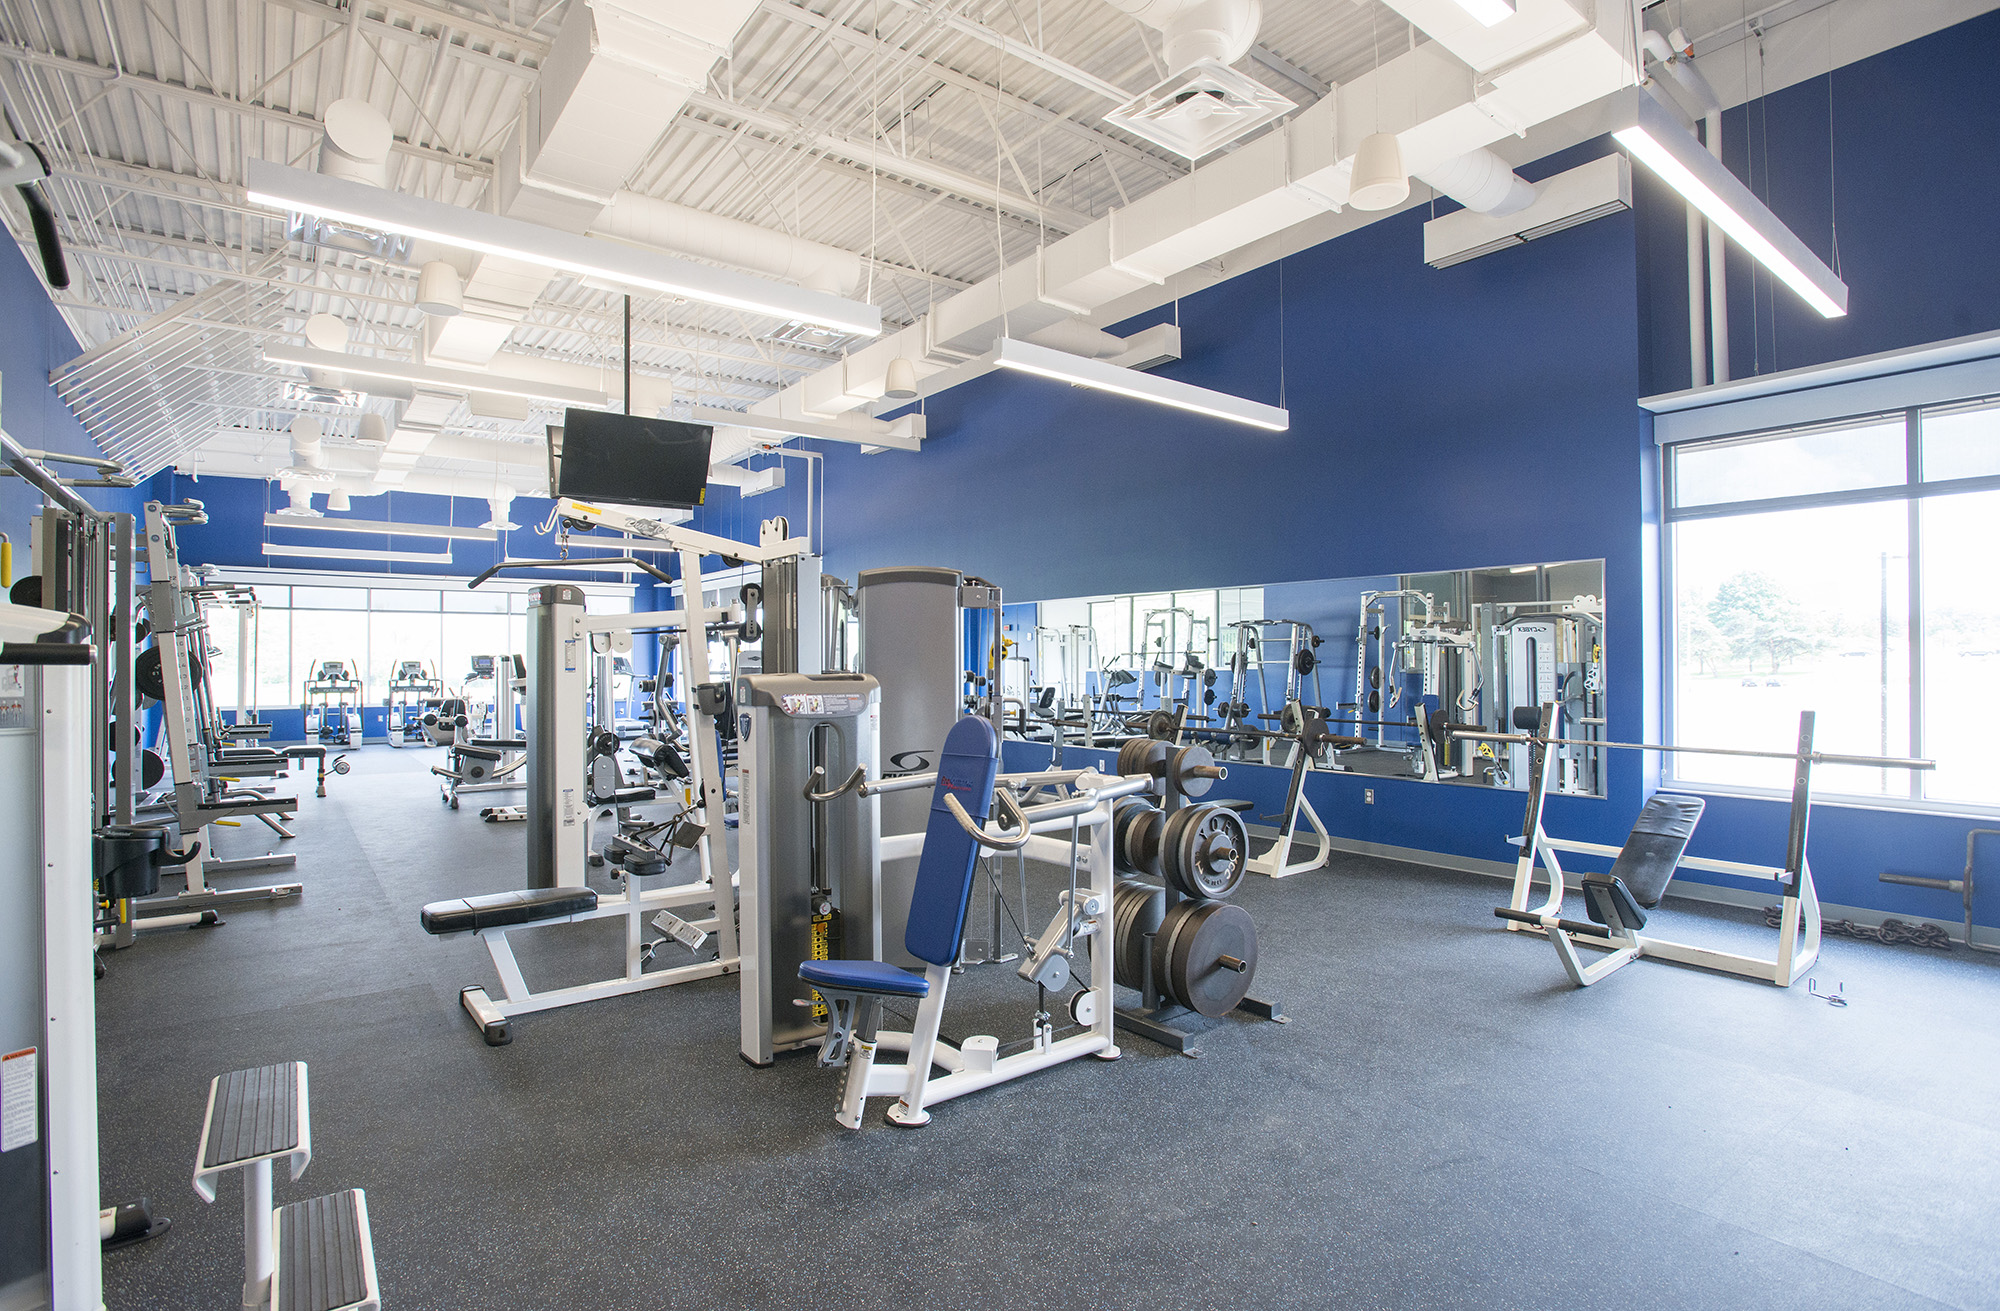 The weight room in the KCC Miller Building.